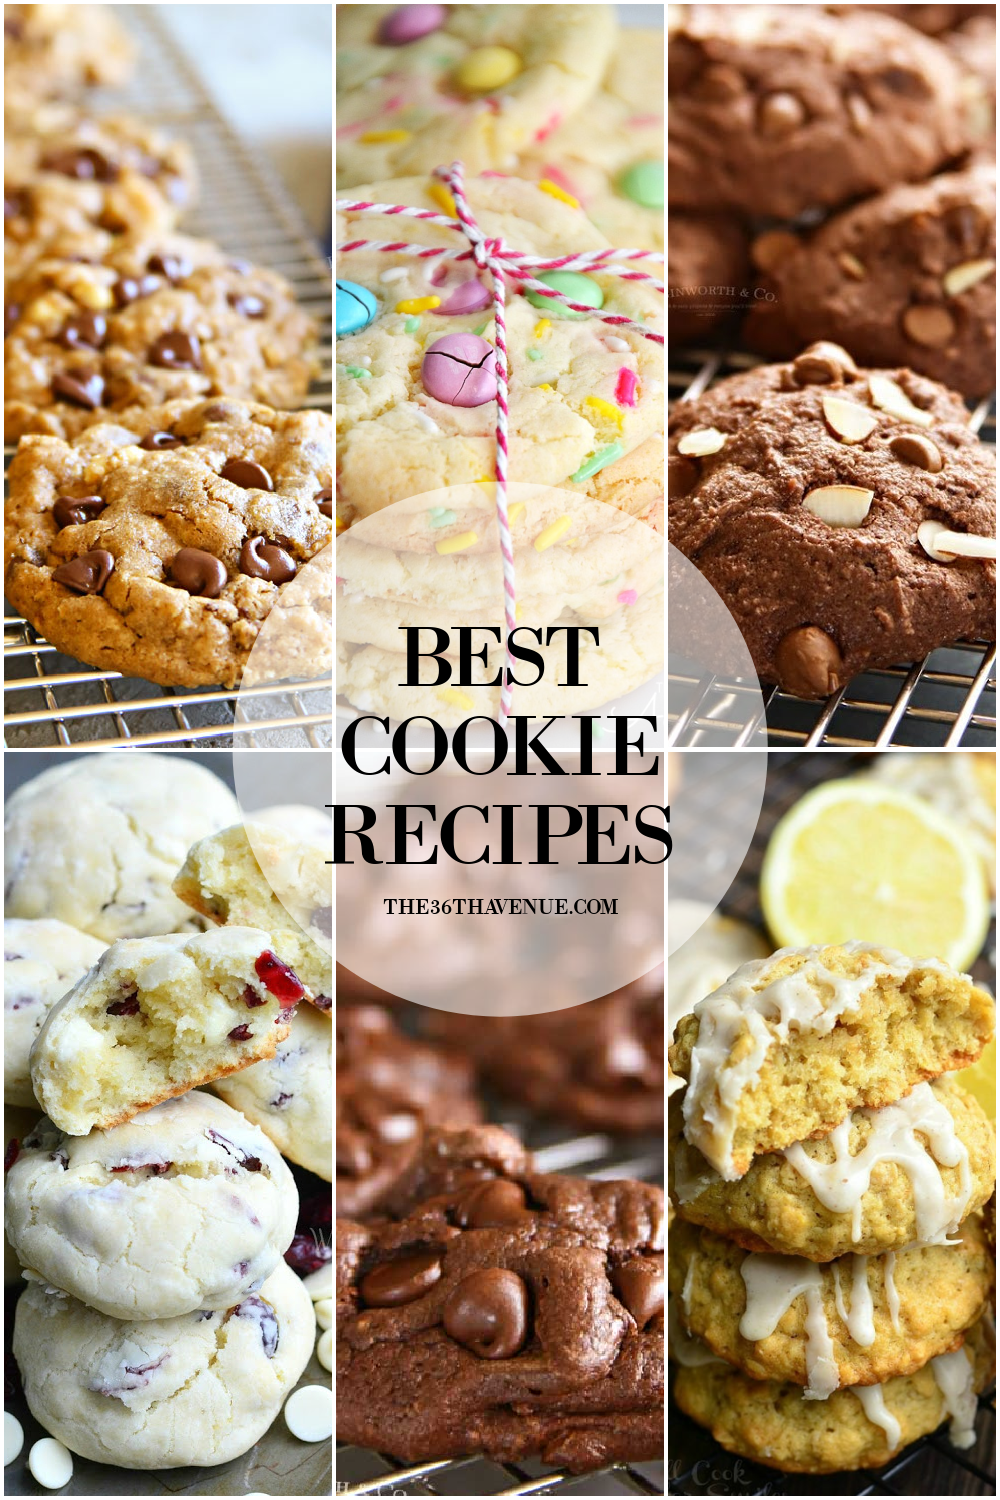 Best Cookie Recipes the36thavenue.com